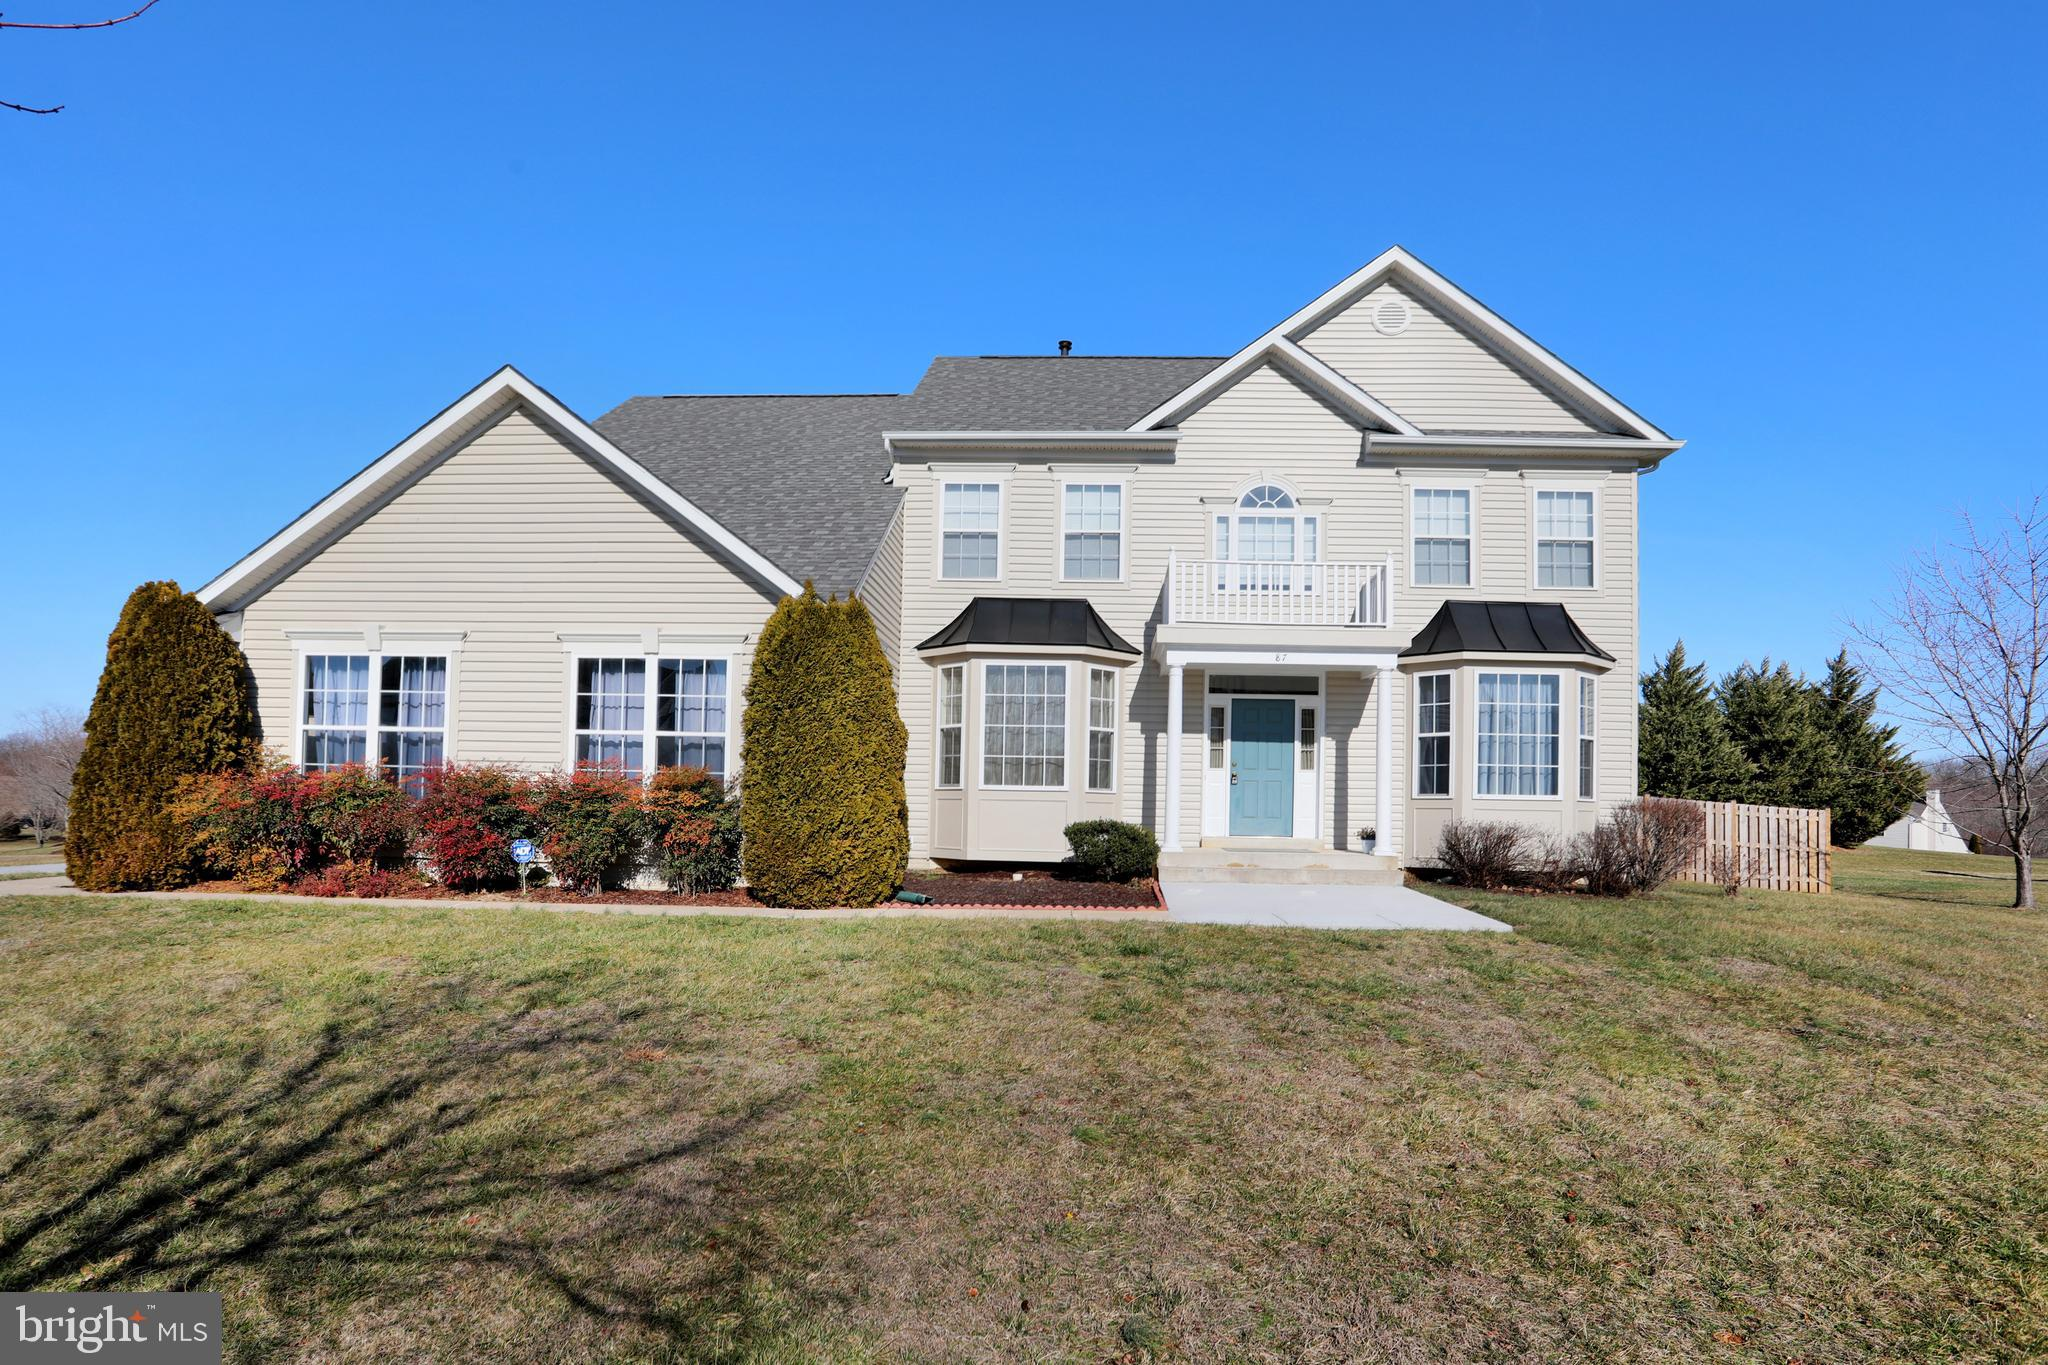 Welcome home to this beautiful colonial in Craighill Estates! 4 bedrooms, 2.5 baths. This kitchen is